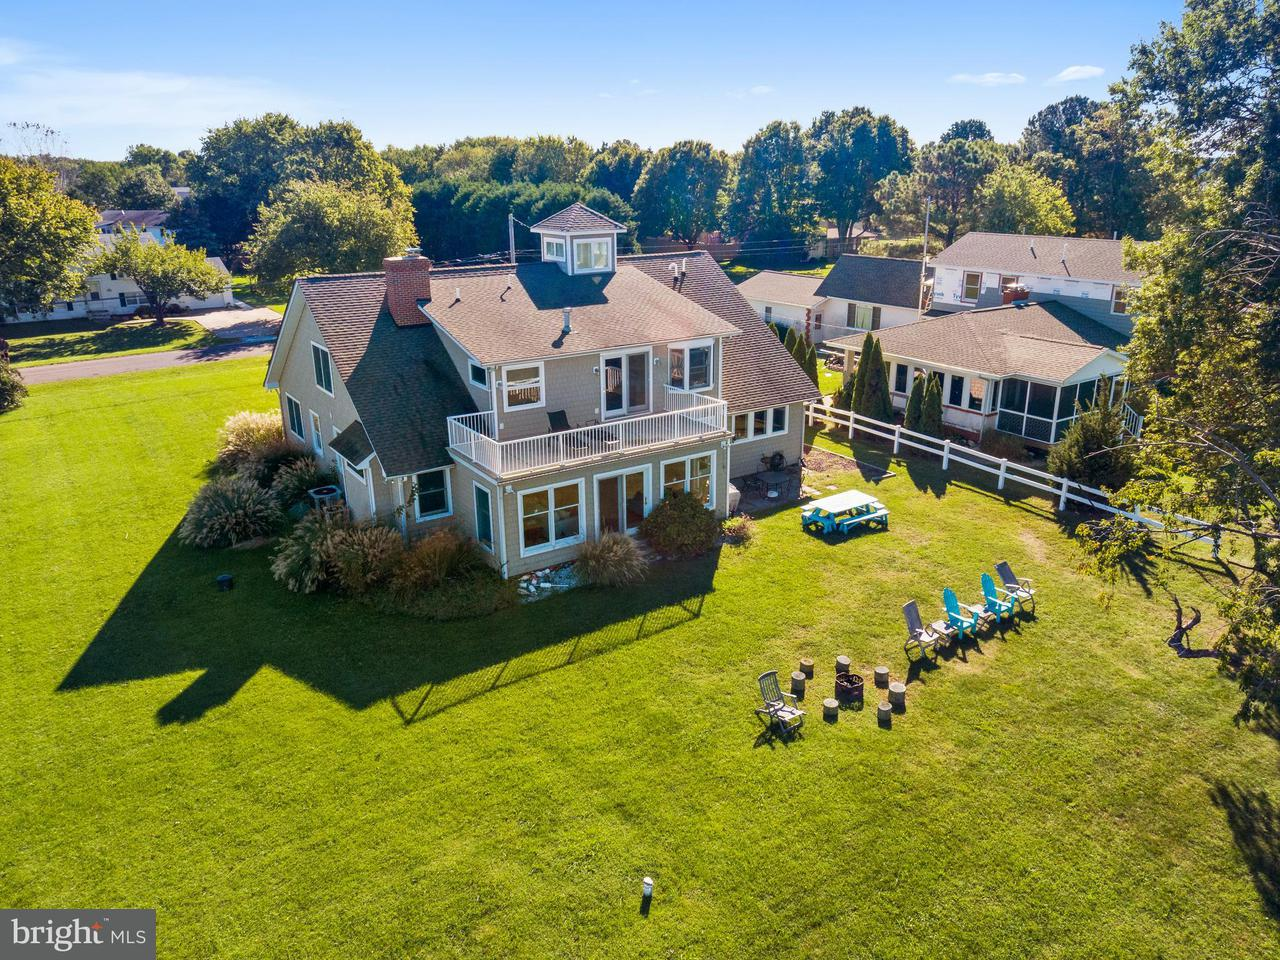 Single Family Home for Sale at 222 BEACHSIDE Drive 222 BEACHSIDE Drive Stevensville, Maryland 21666 United States